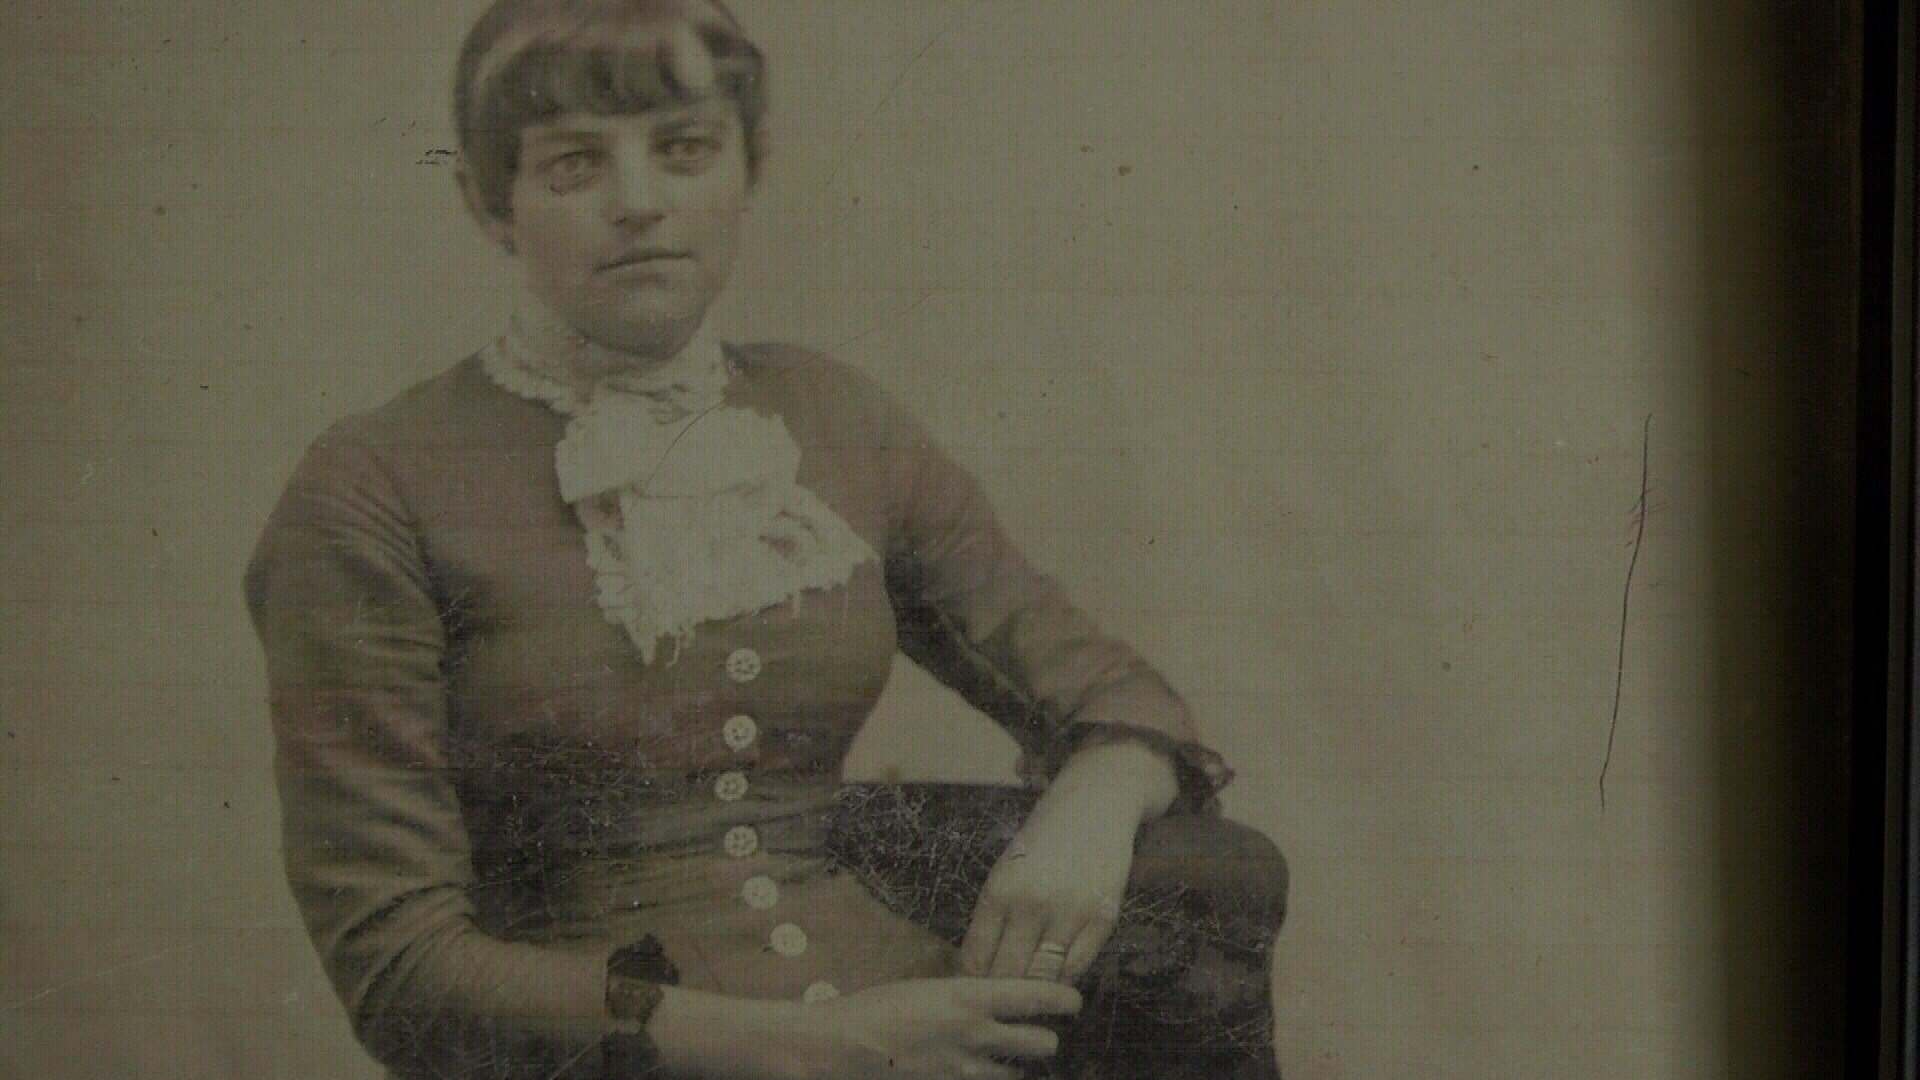 Many historians say this is the photograph of Kate Bender